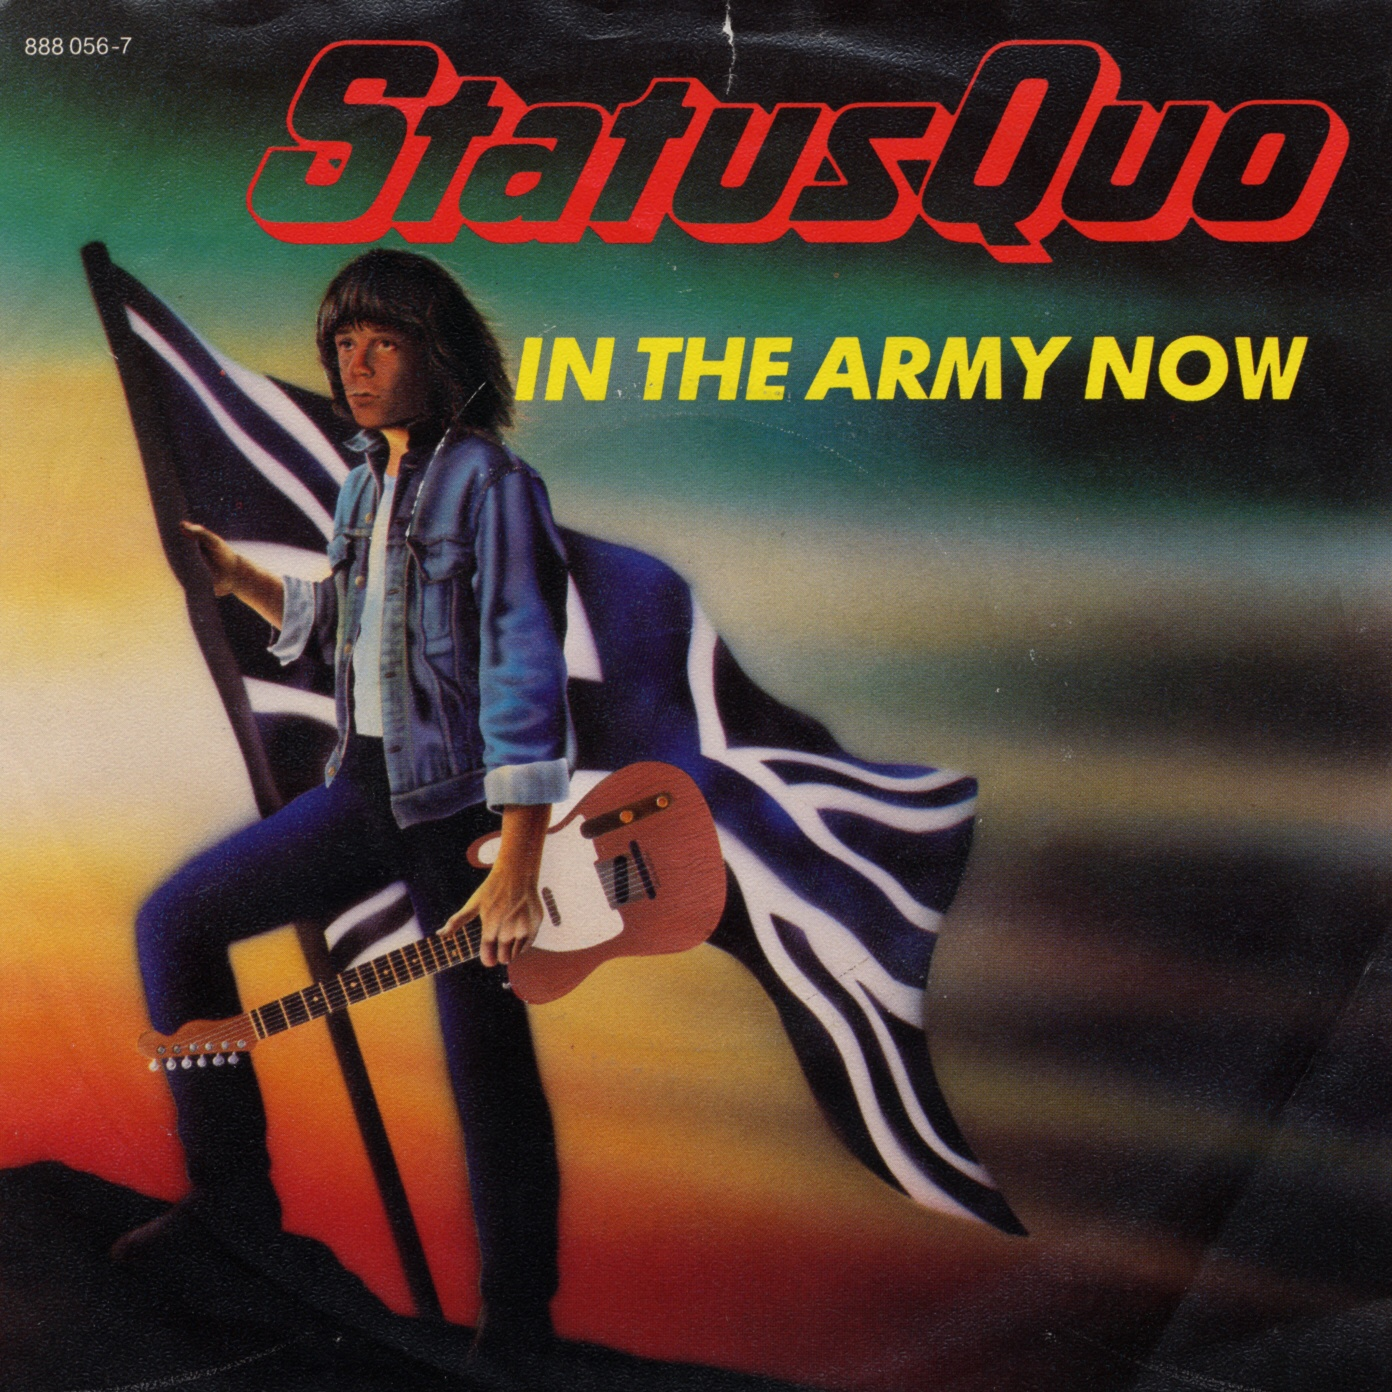 Cover: You're in the army now, Status Quo